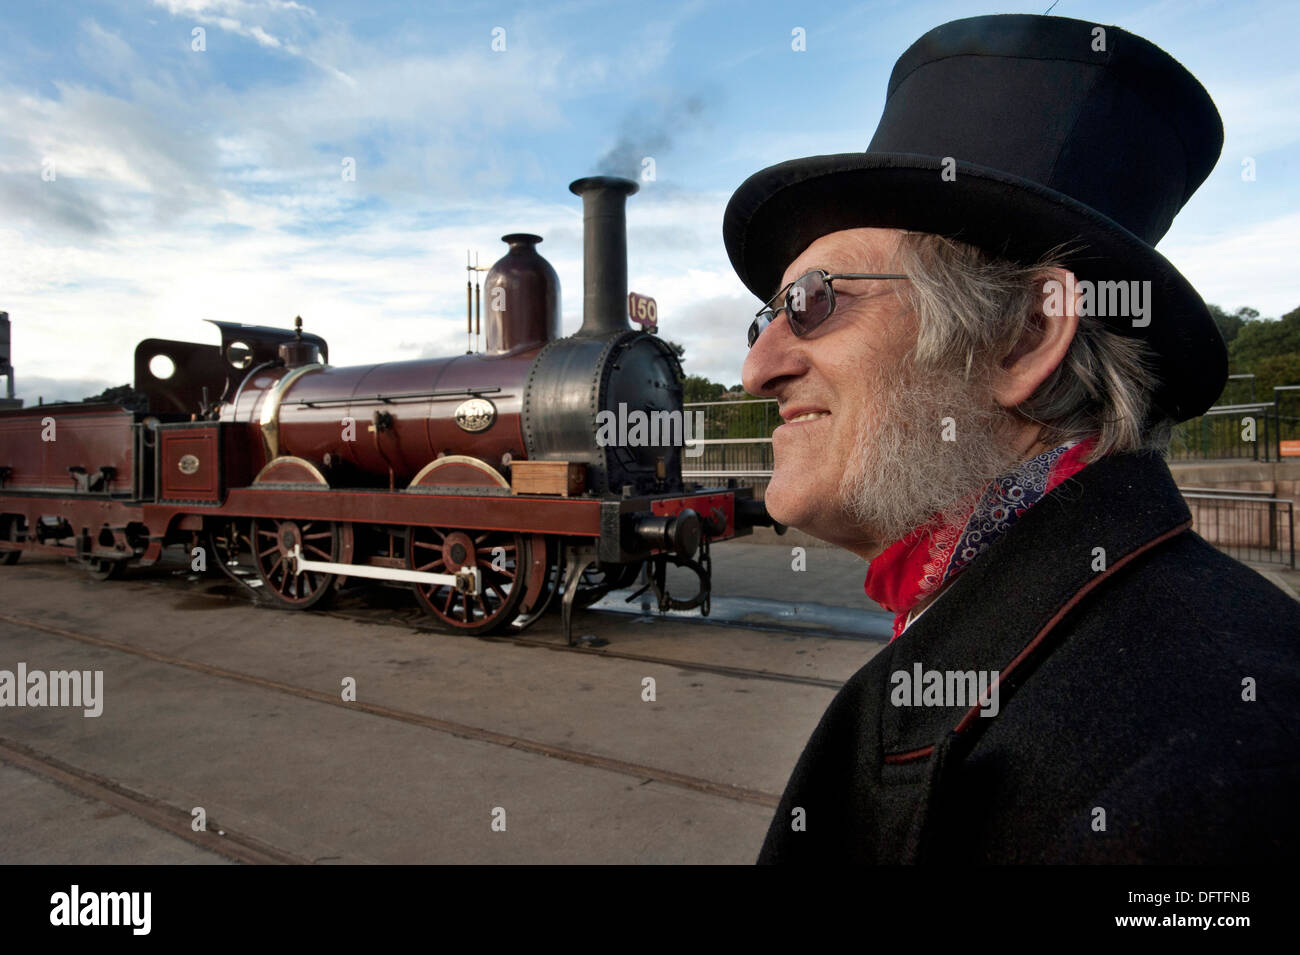 Steam engine driver in period dress for 1860s - Stock Image